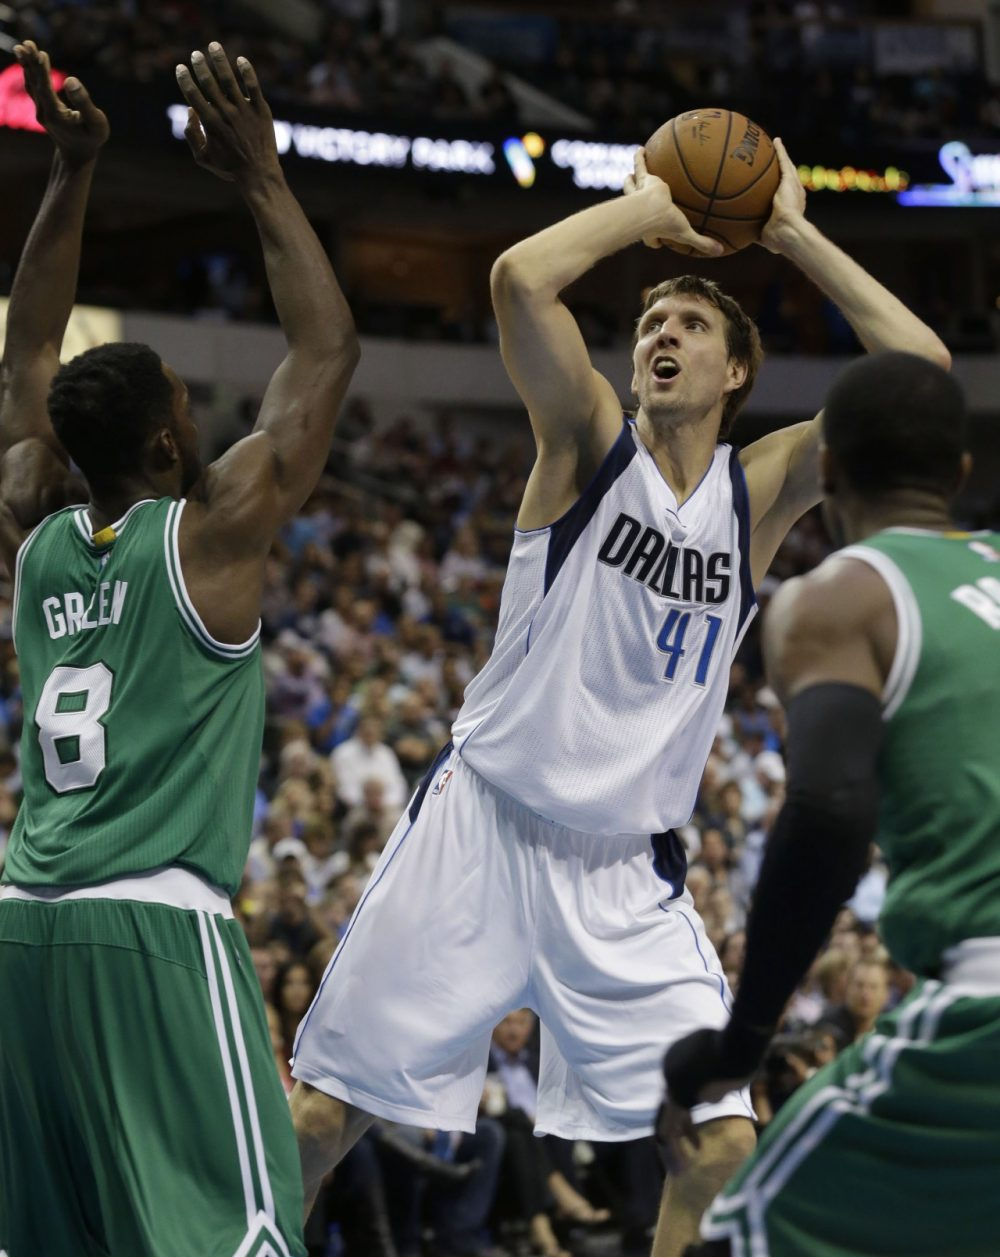 Dallas Mavericks forward Dirk Nowitzki (41) of Germany shoots against Boston Celtics forward Jeff Green (8) during Monday night's game. (LM Otero/AP)